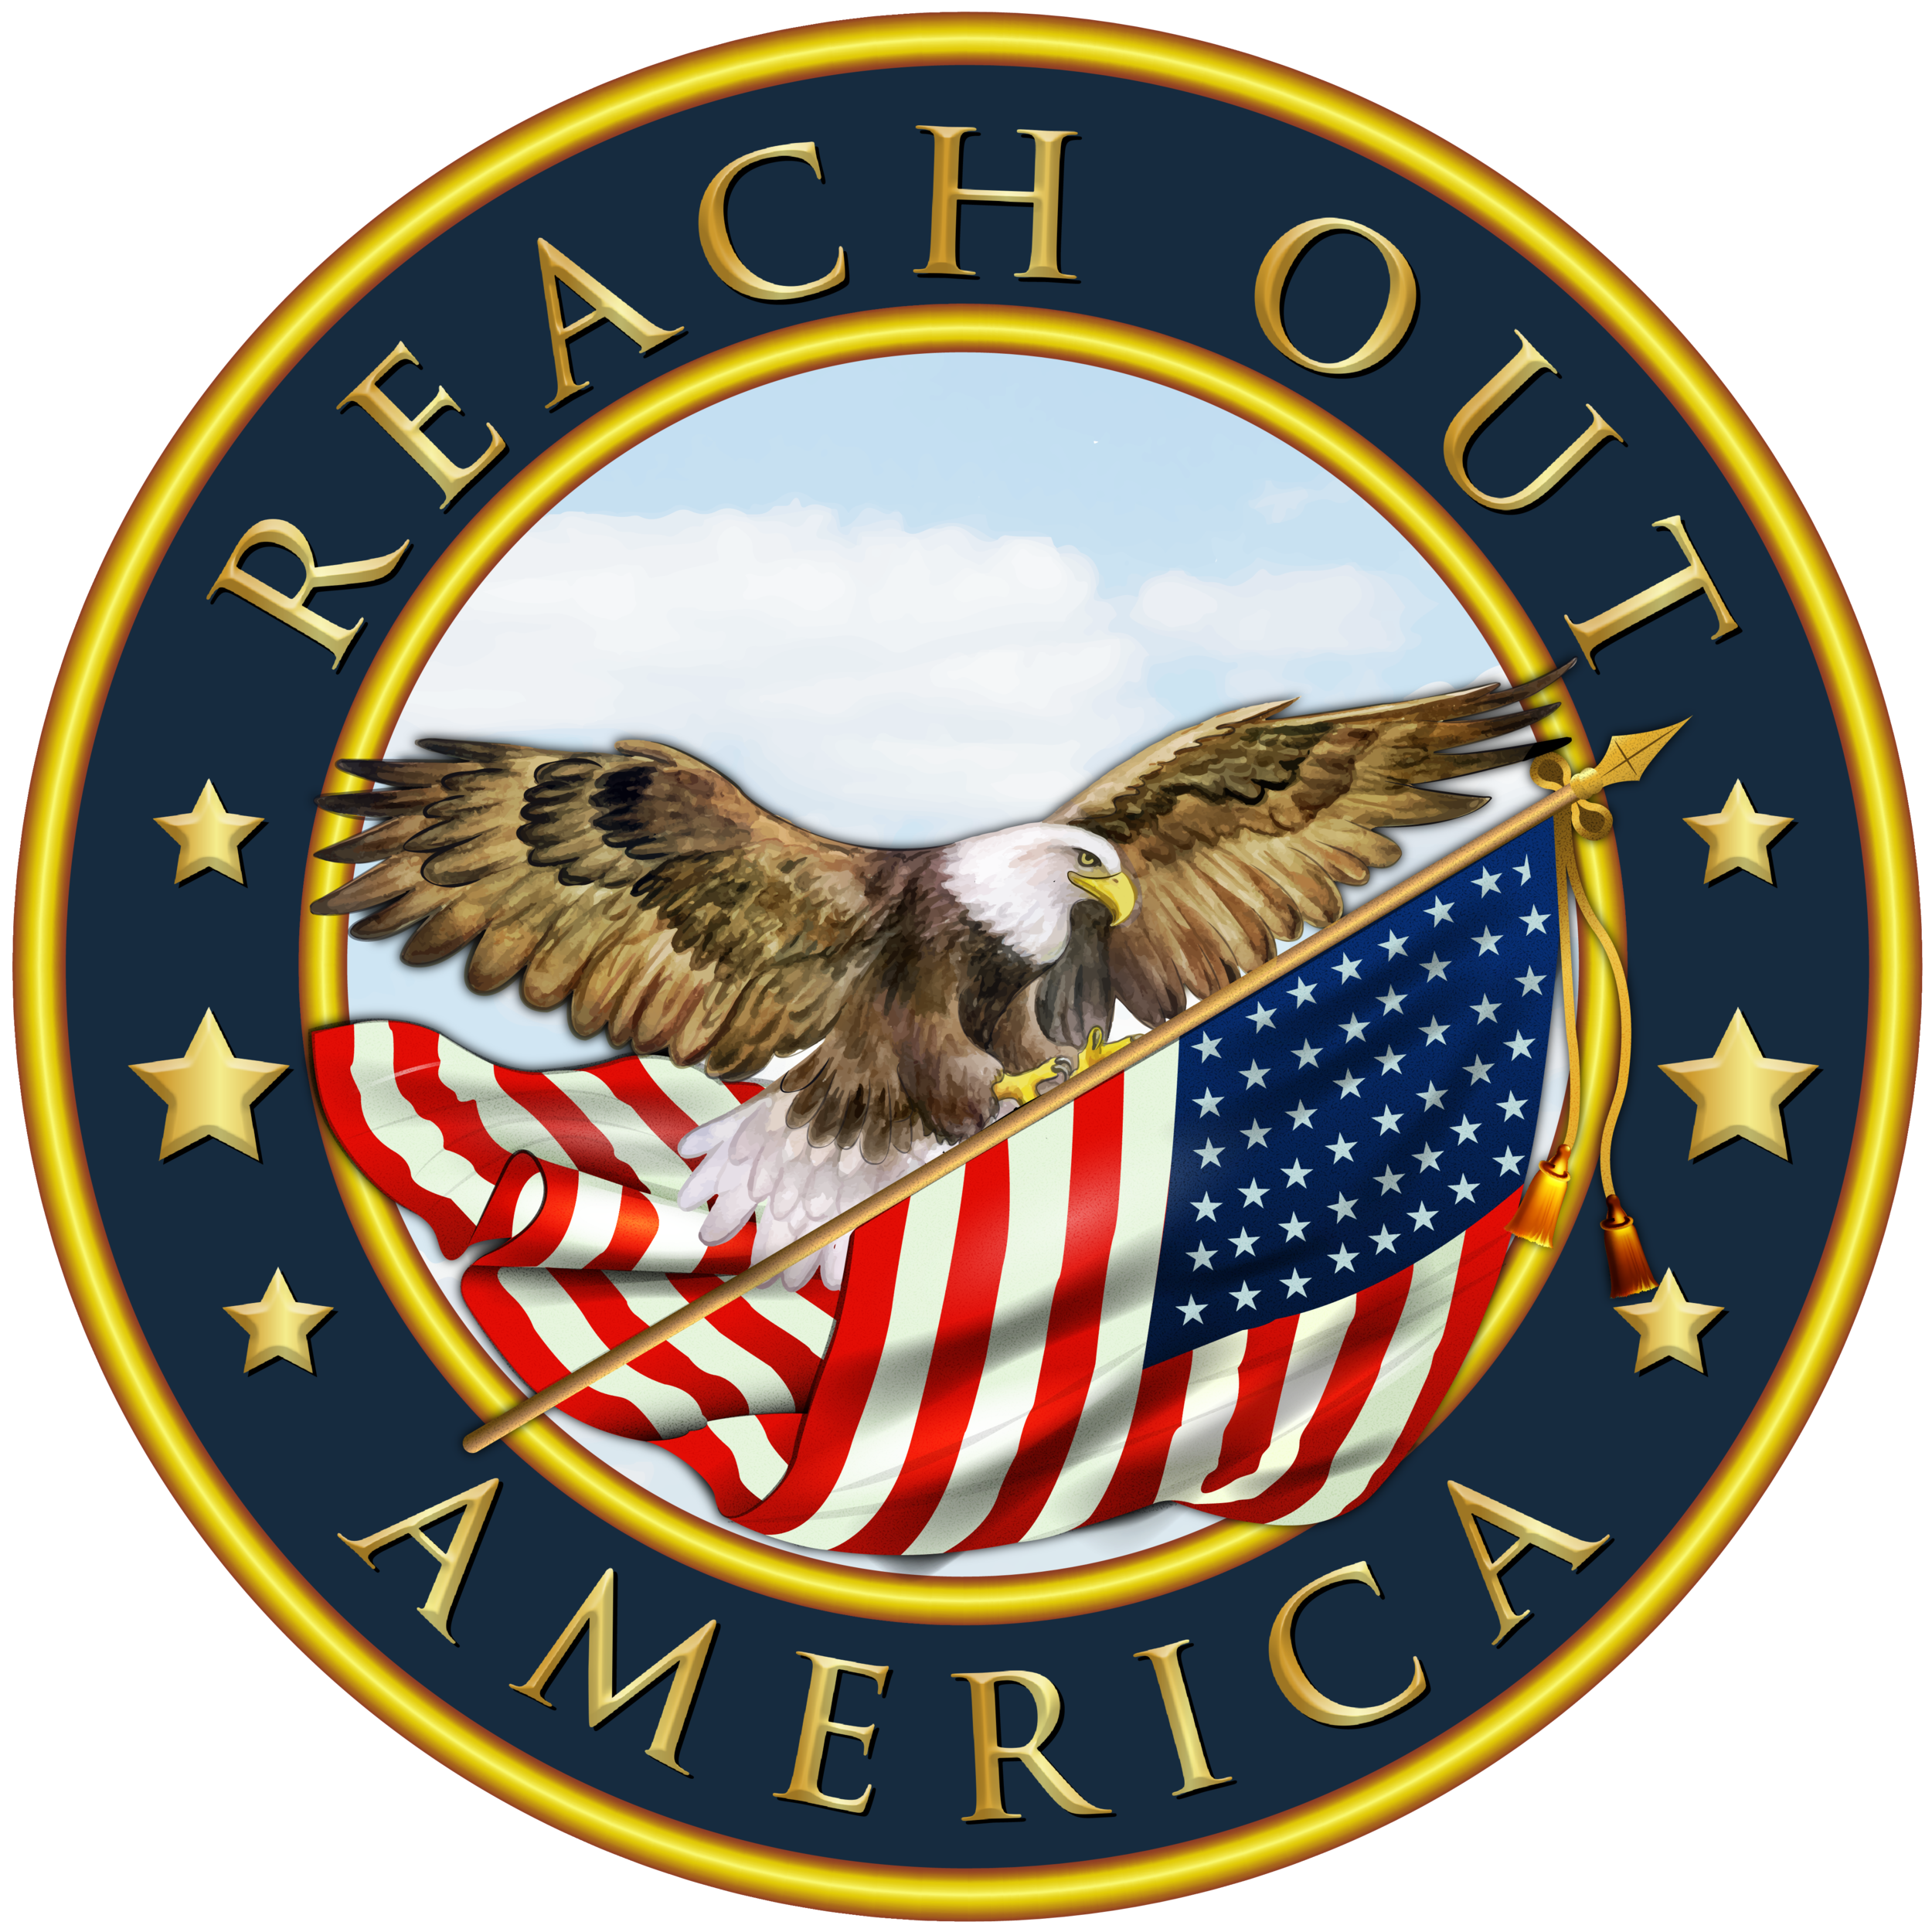 Reach Out America - For those moments when unthinkable tragedy happens, we are there.